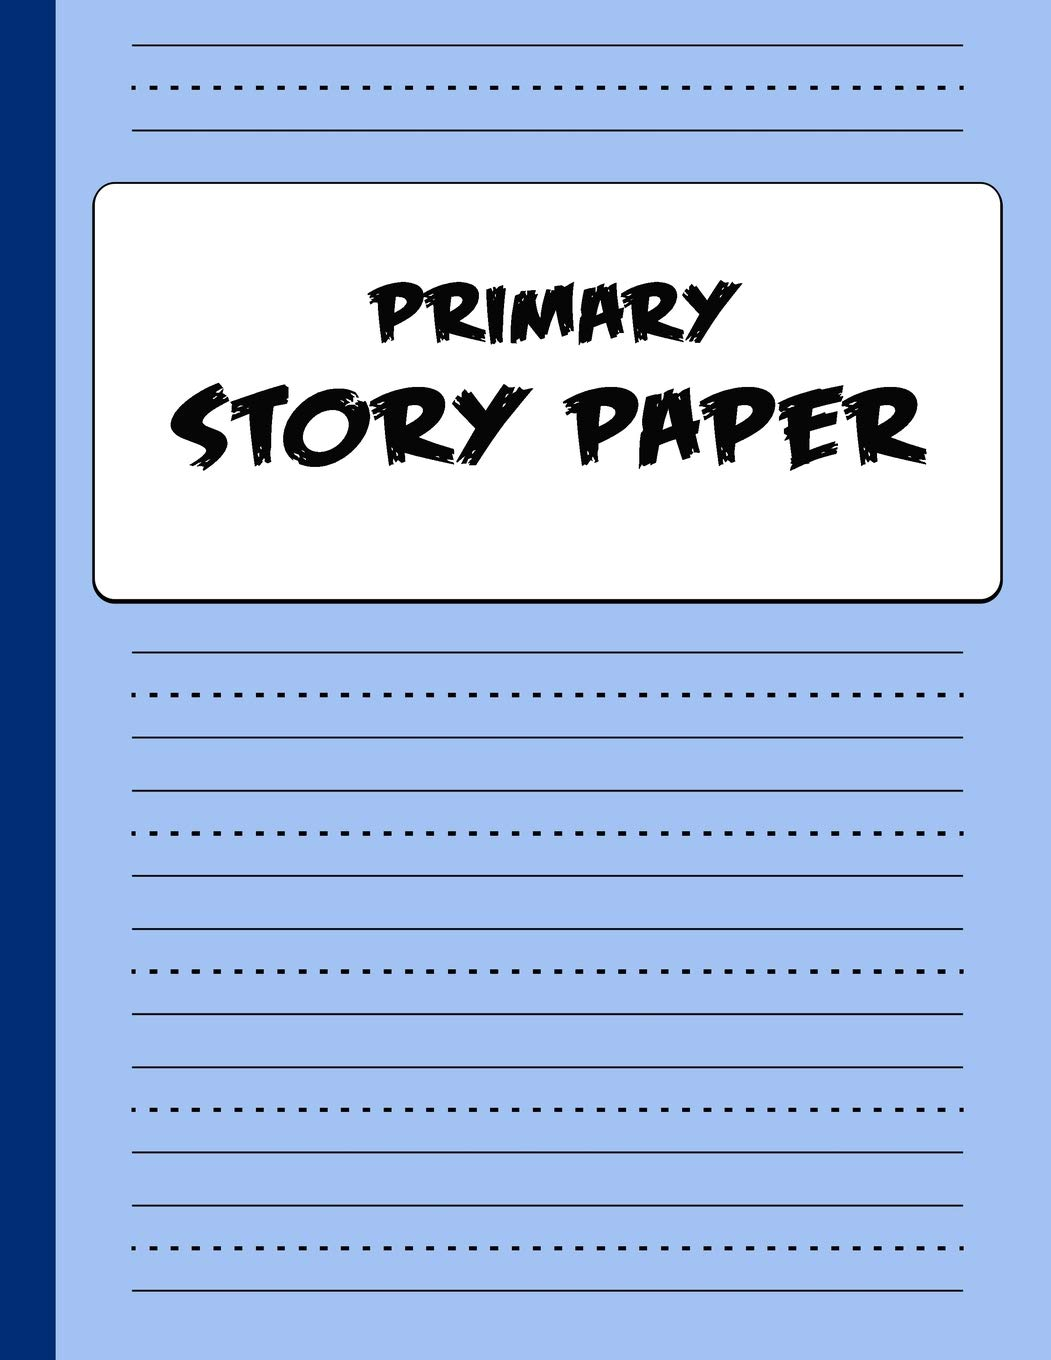 Primary Story Paper Draw Write Composition Book For Kids